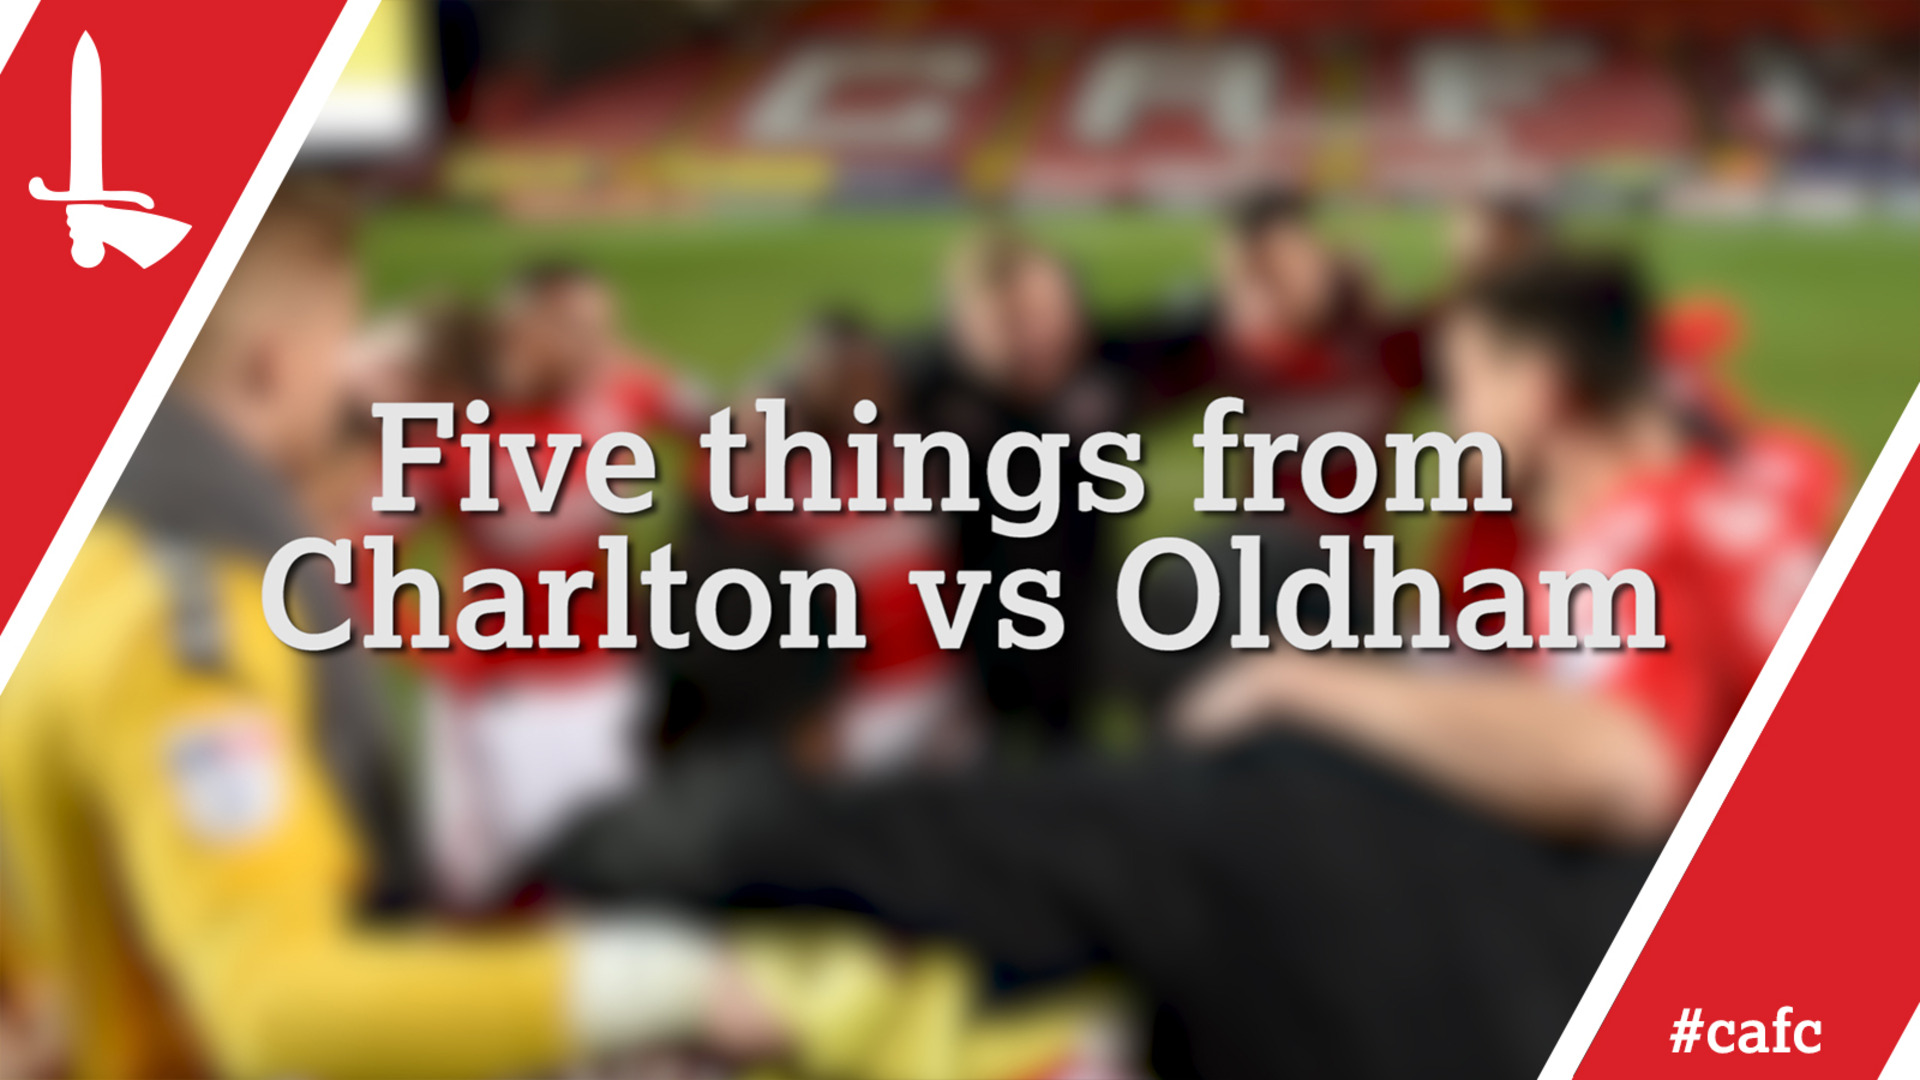 Five things from Charlton vs Oldham